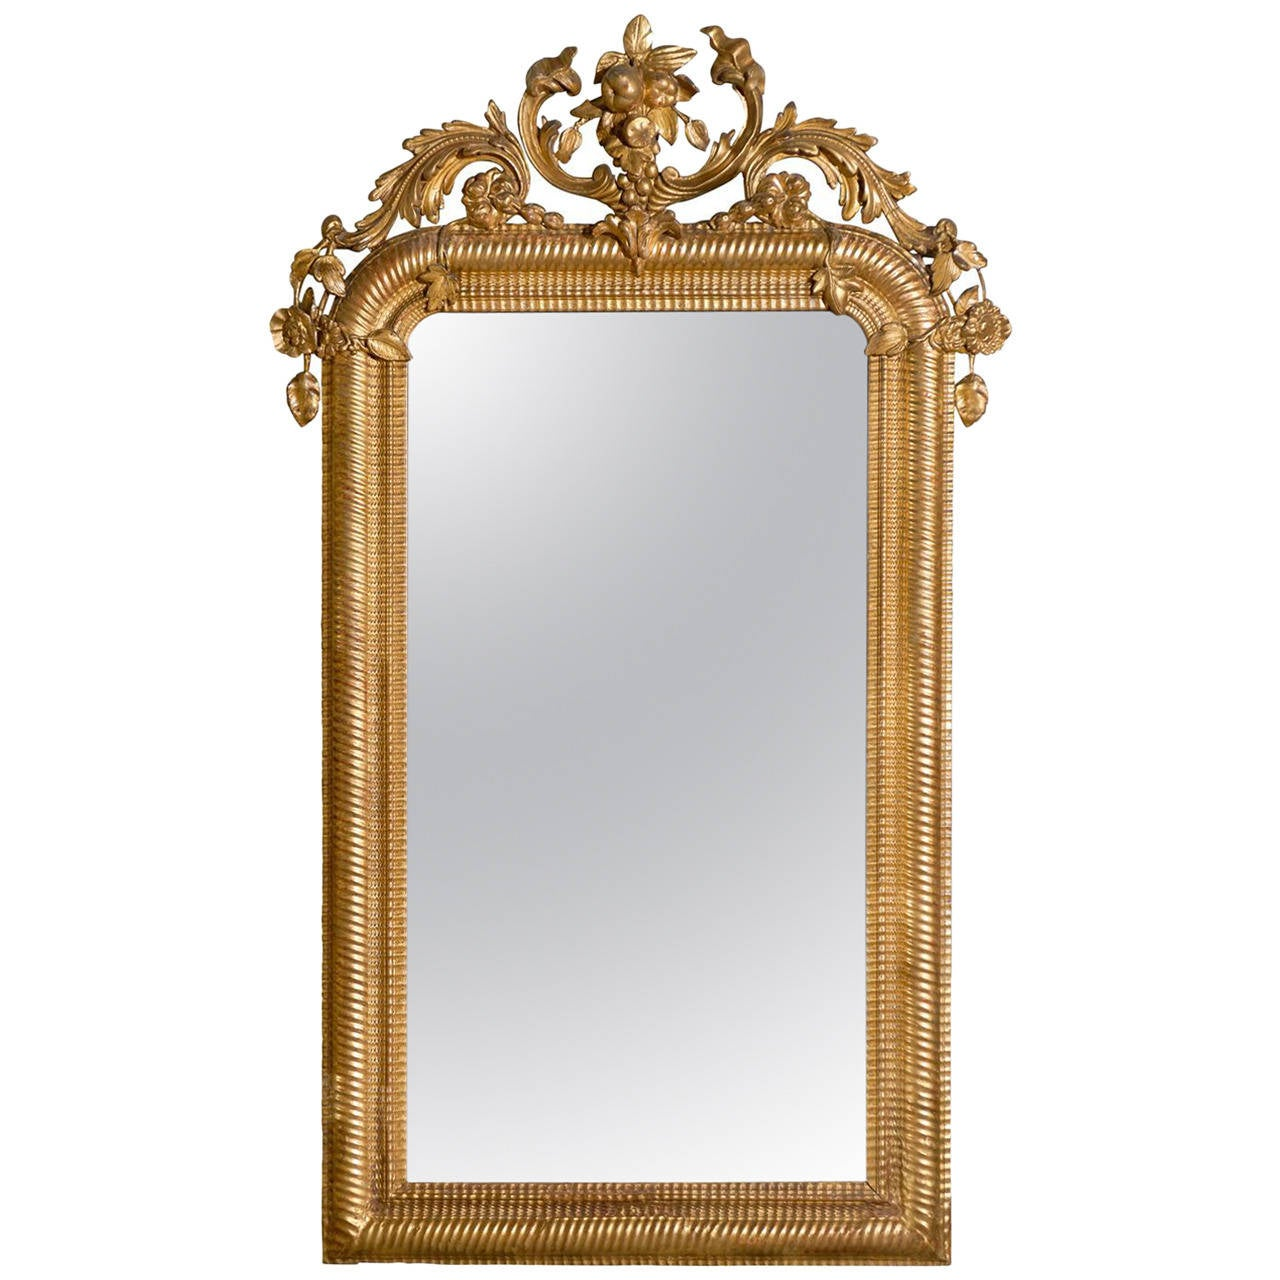 French carved gilt mirror at 1stdibs for What is a gilt mirror